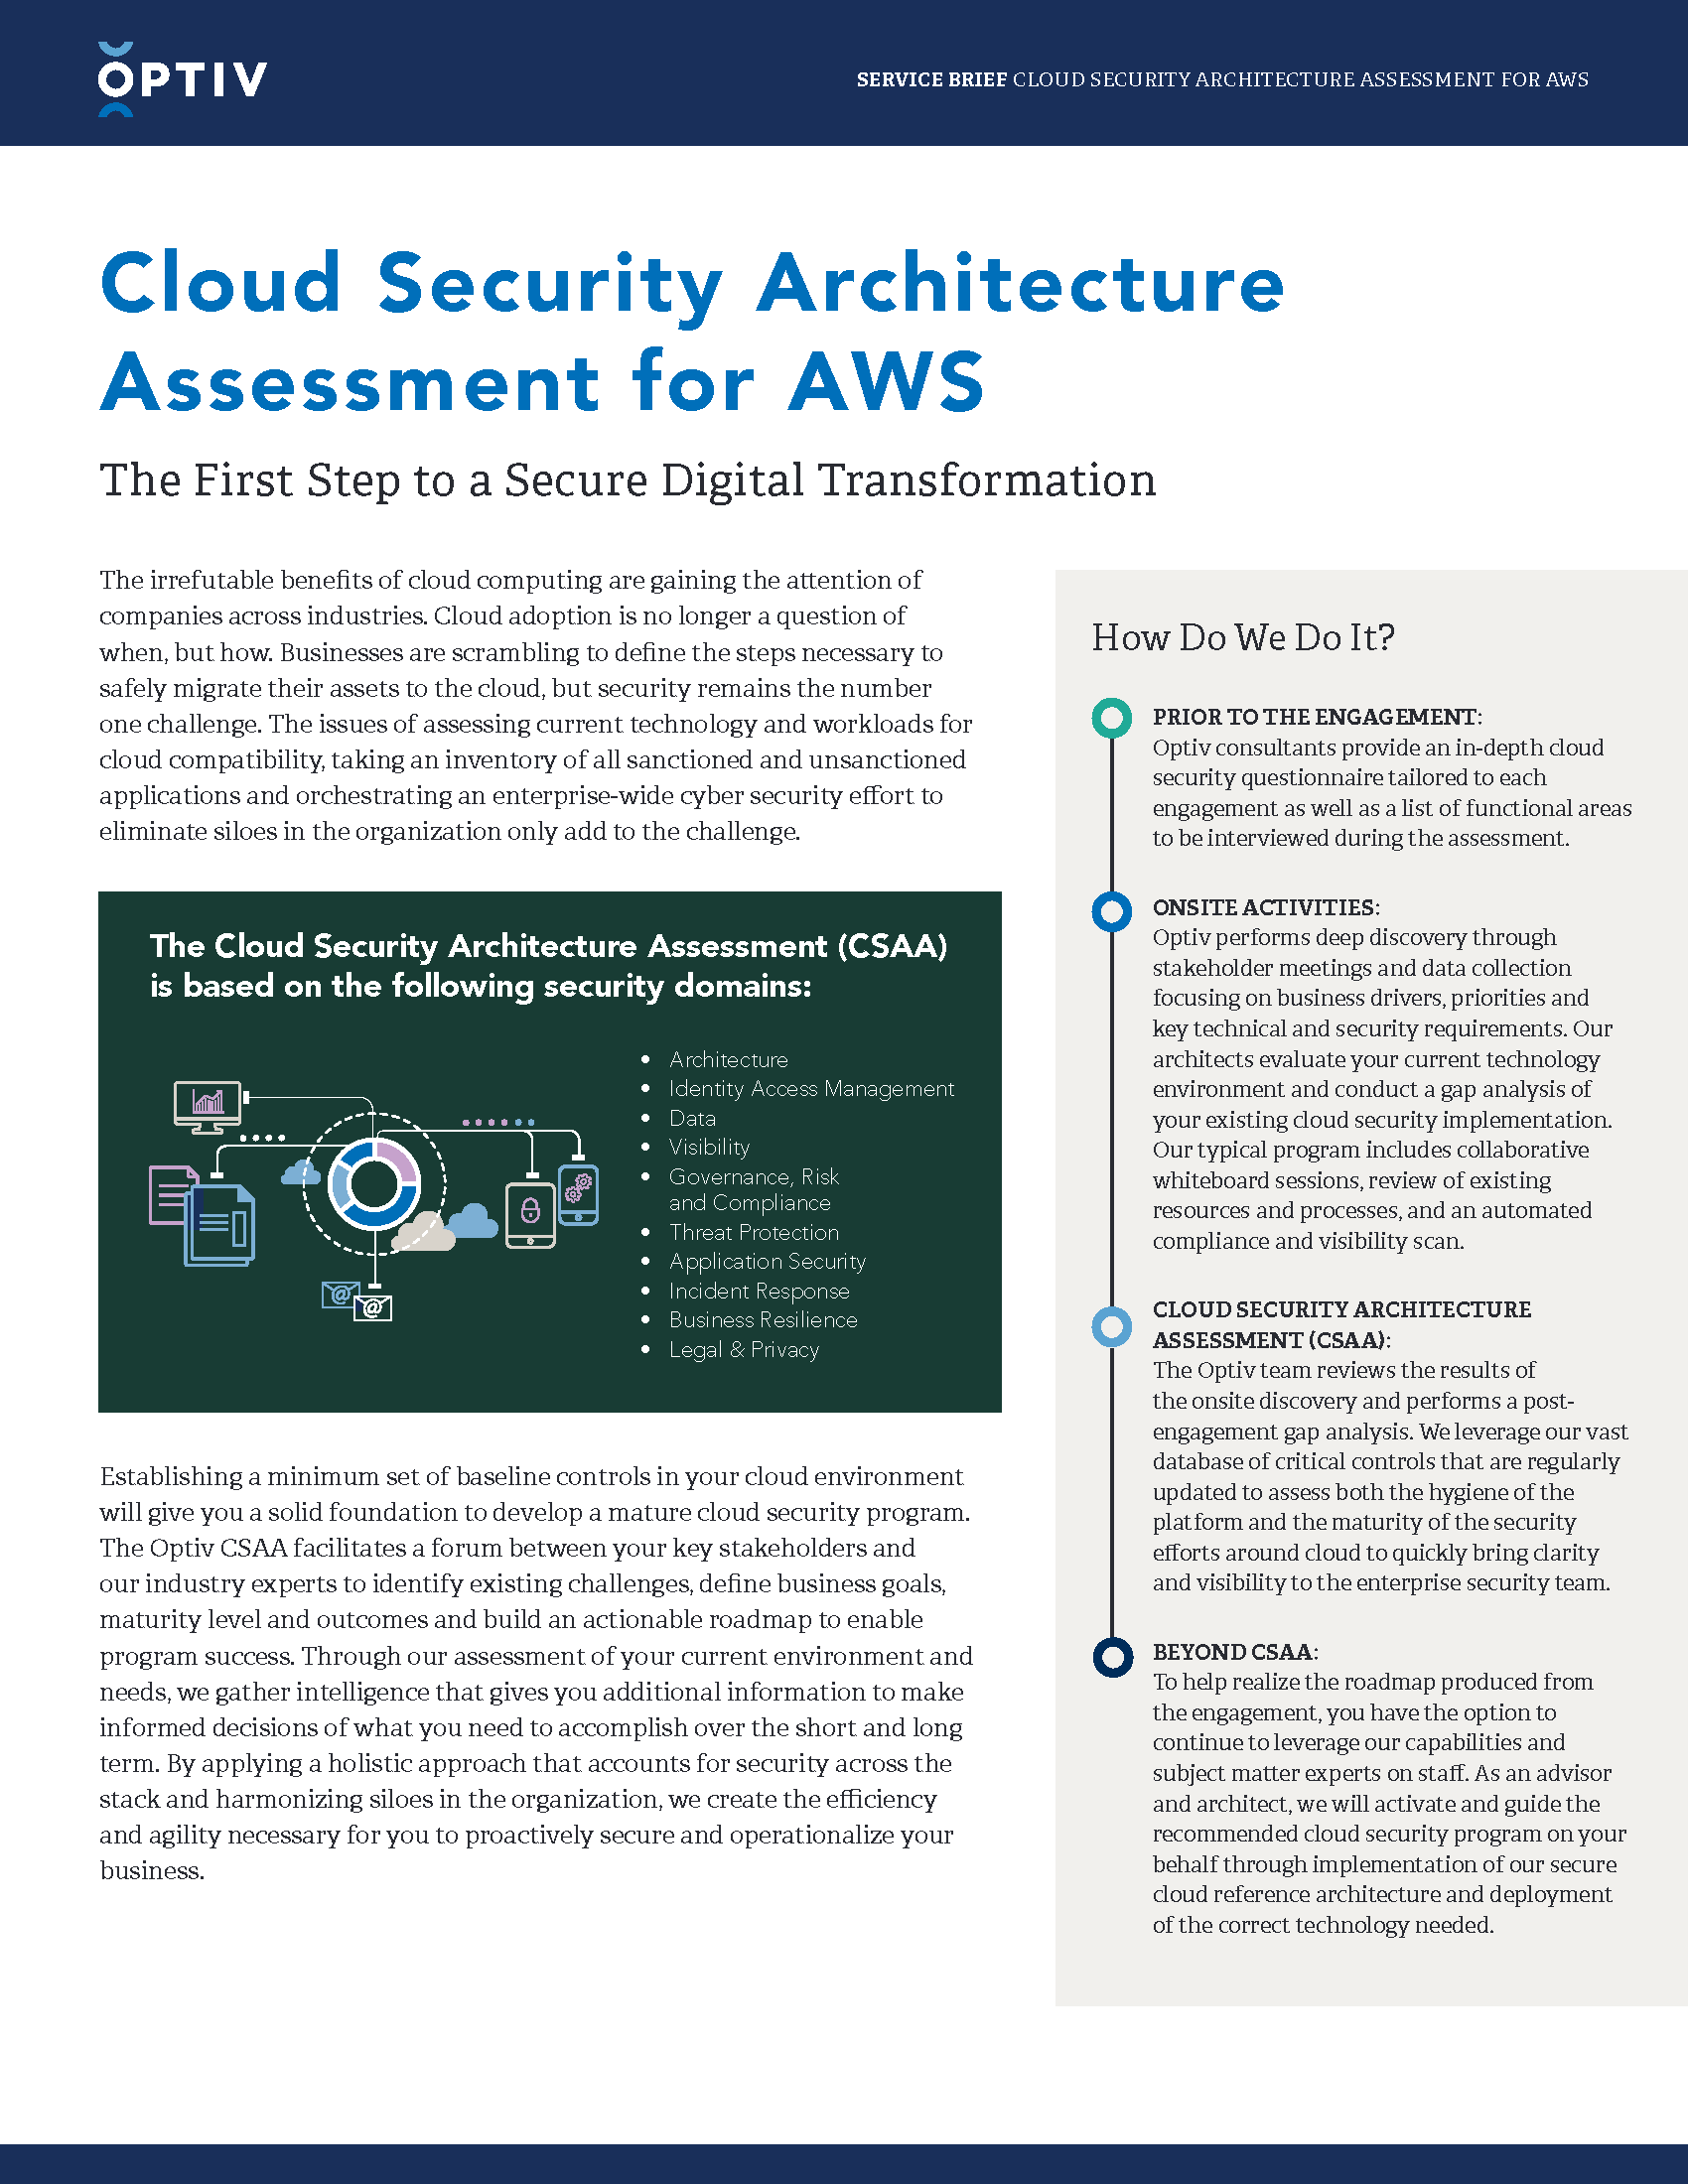 Cloud Security Architecture Assessment for AWS